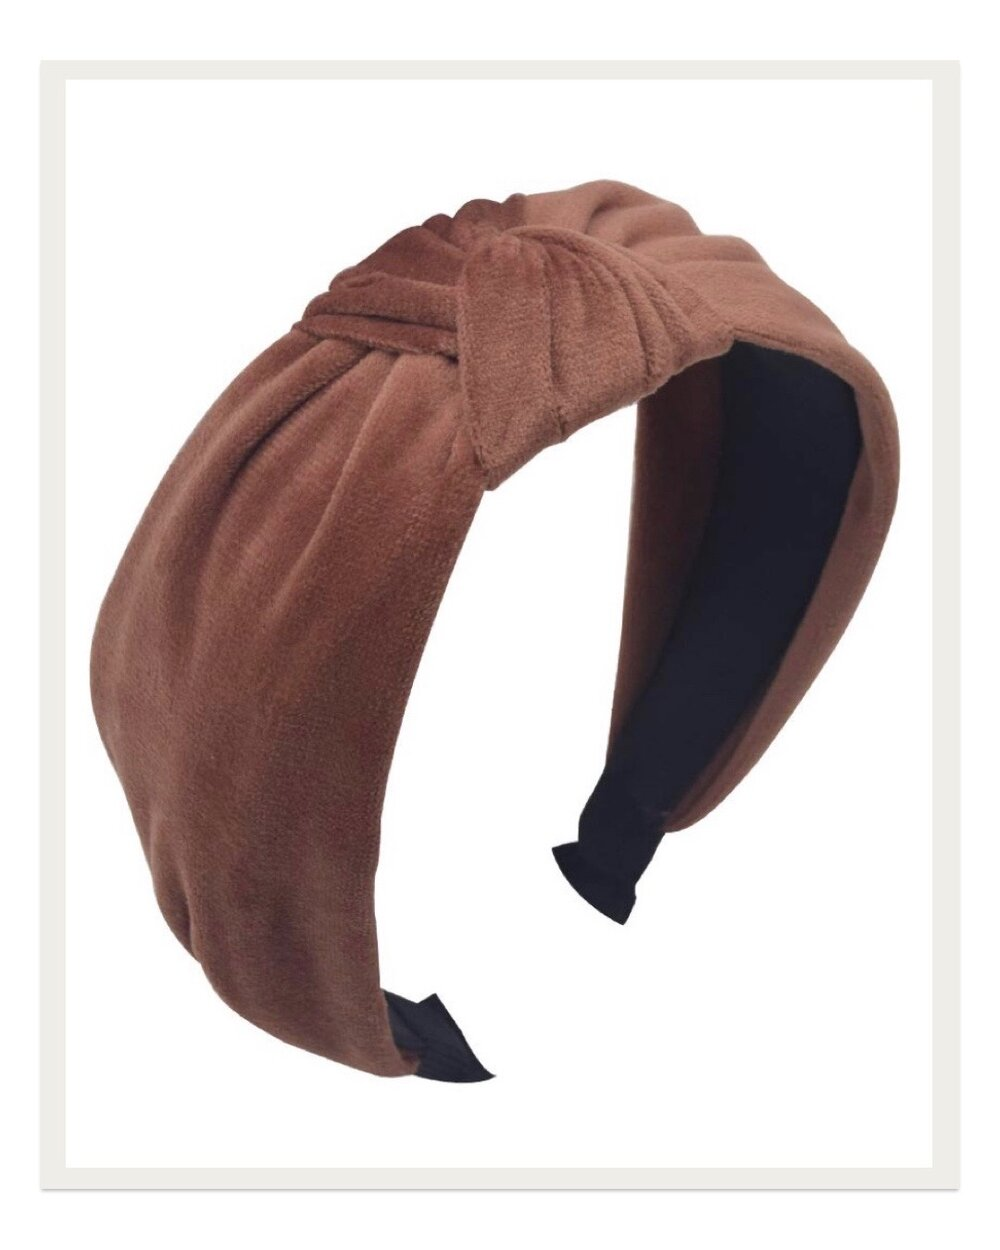 I'm in love with this velvety knot headband too! It looks so luxe and because it's a little more low key than the shiny options above, I can pair it with virtually any outfit to pull it together into something more sophisticated. I am so into this blush/clay color lately and absolutely adore this accessory.